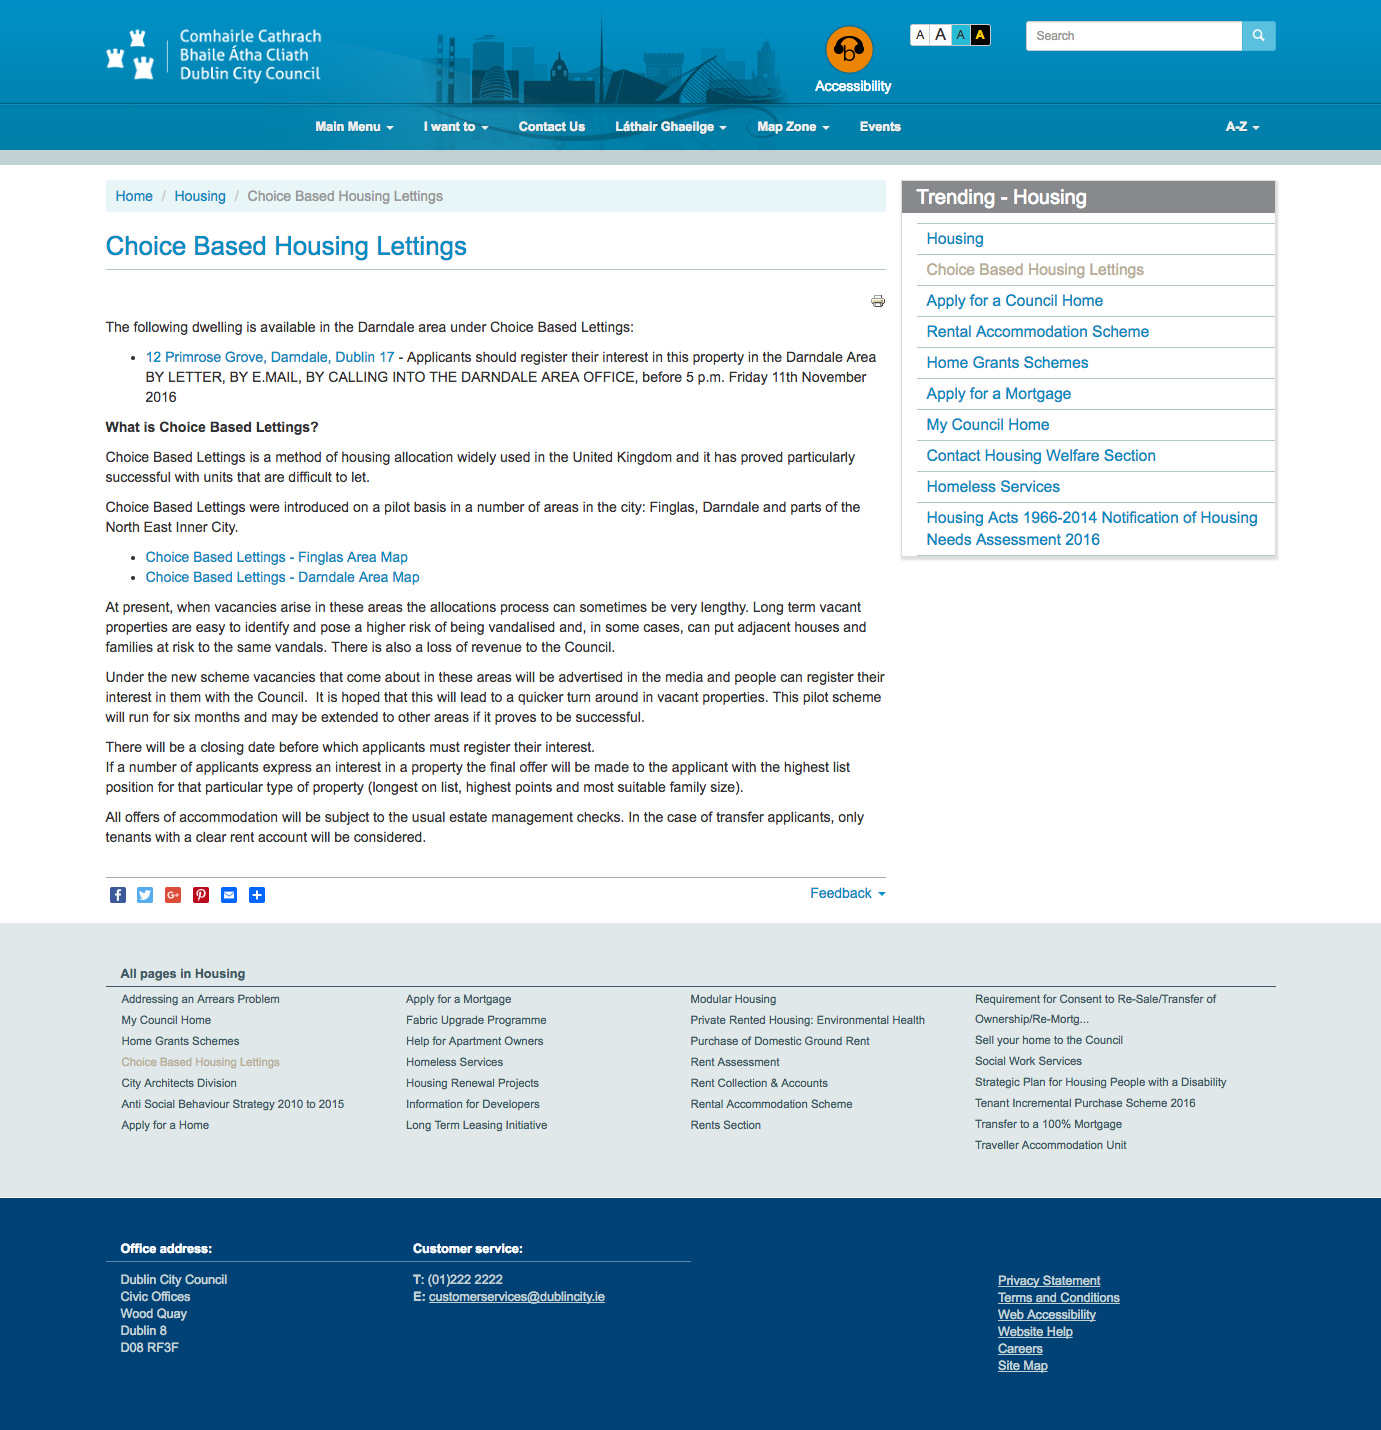 Dublin City Council's old content template. Showing two forms of secondary navigation and verbose content.